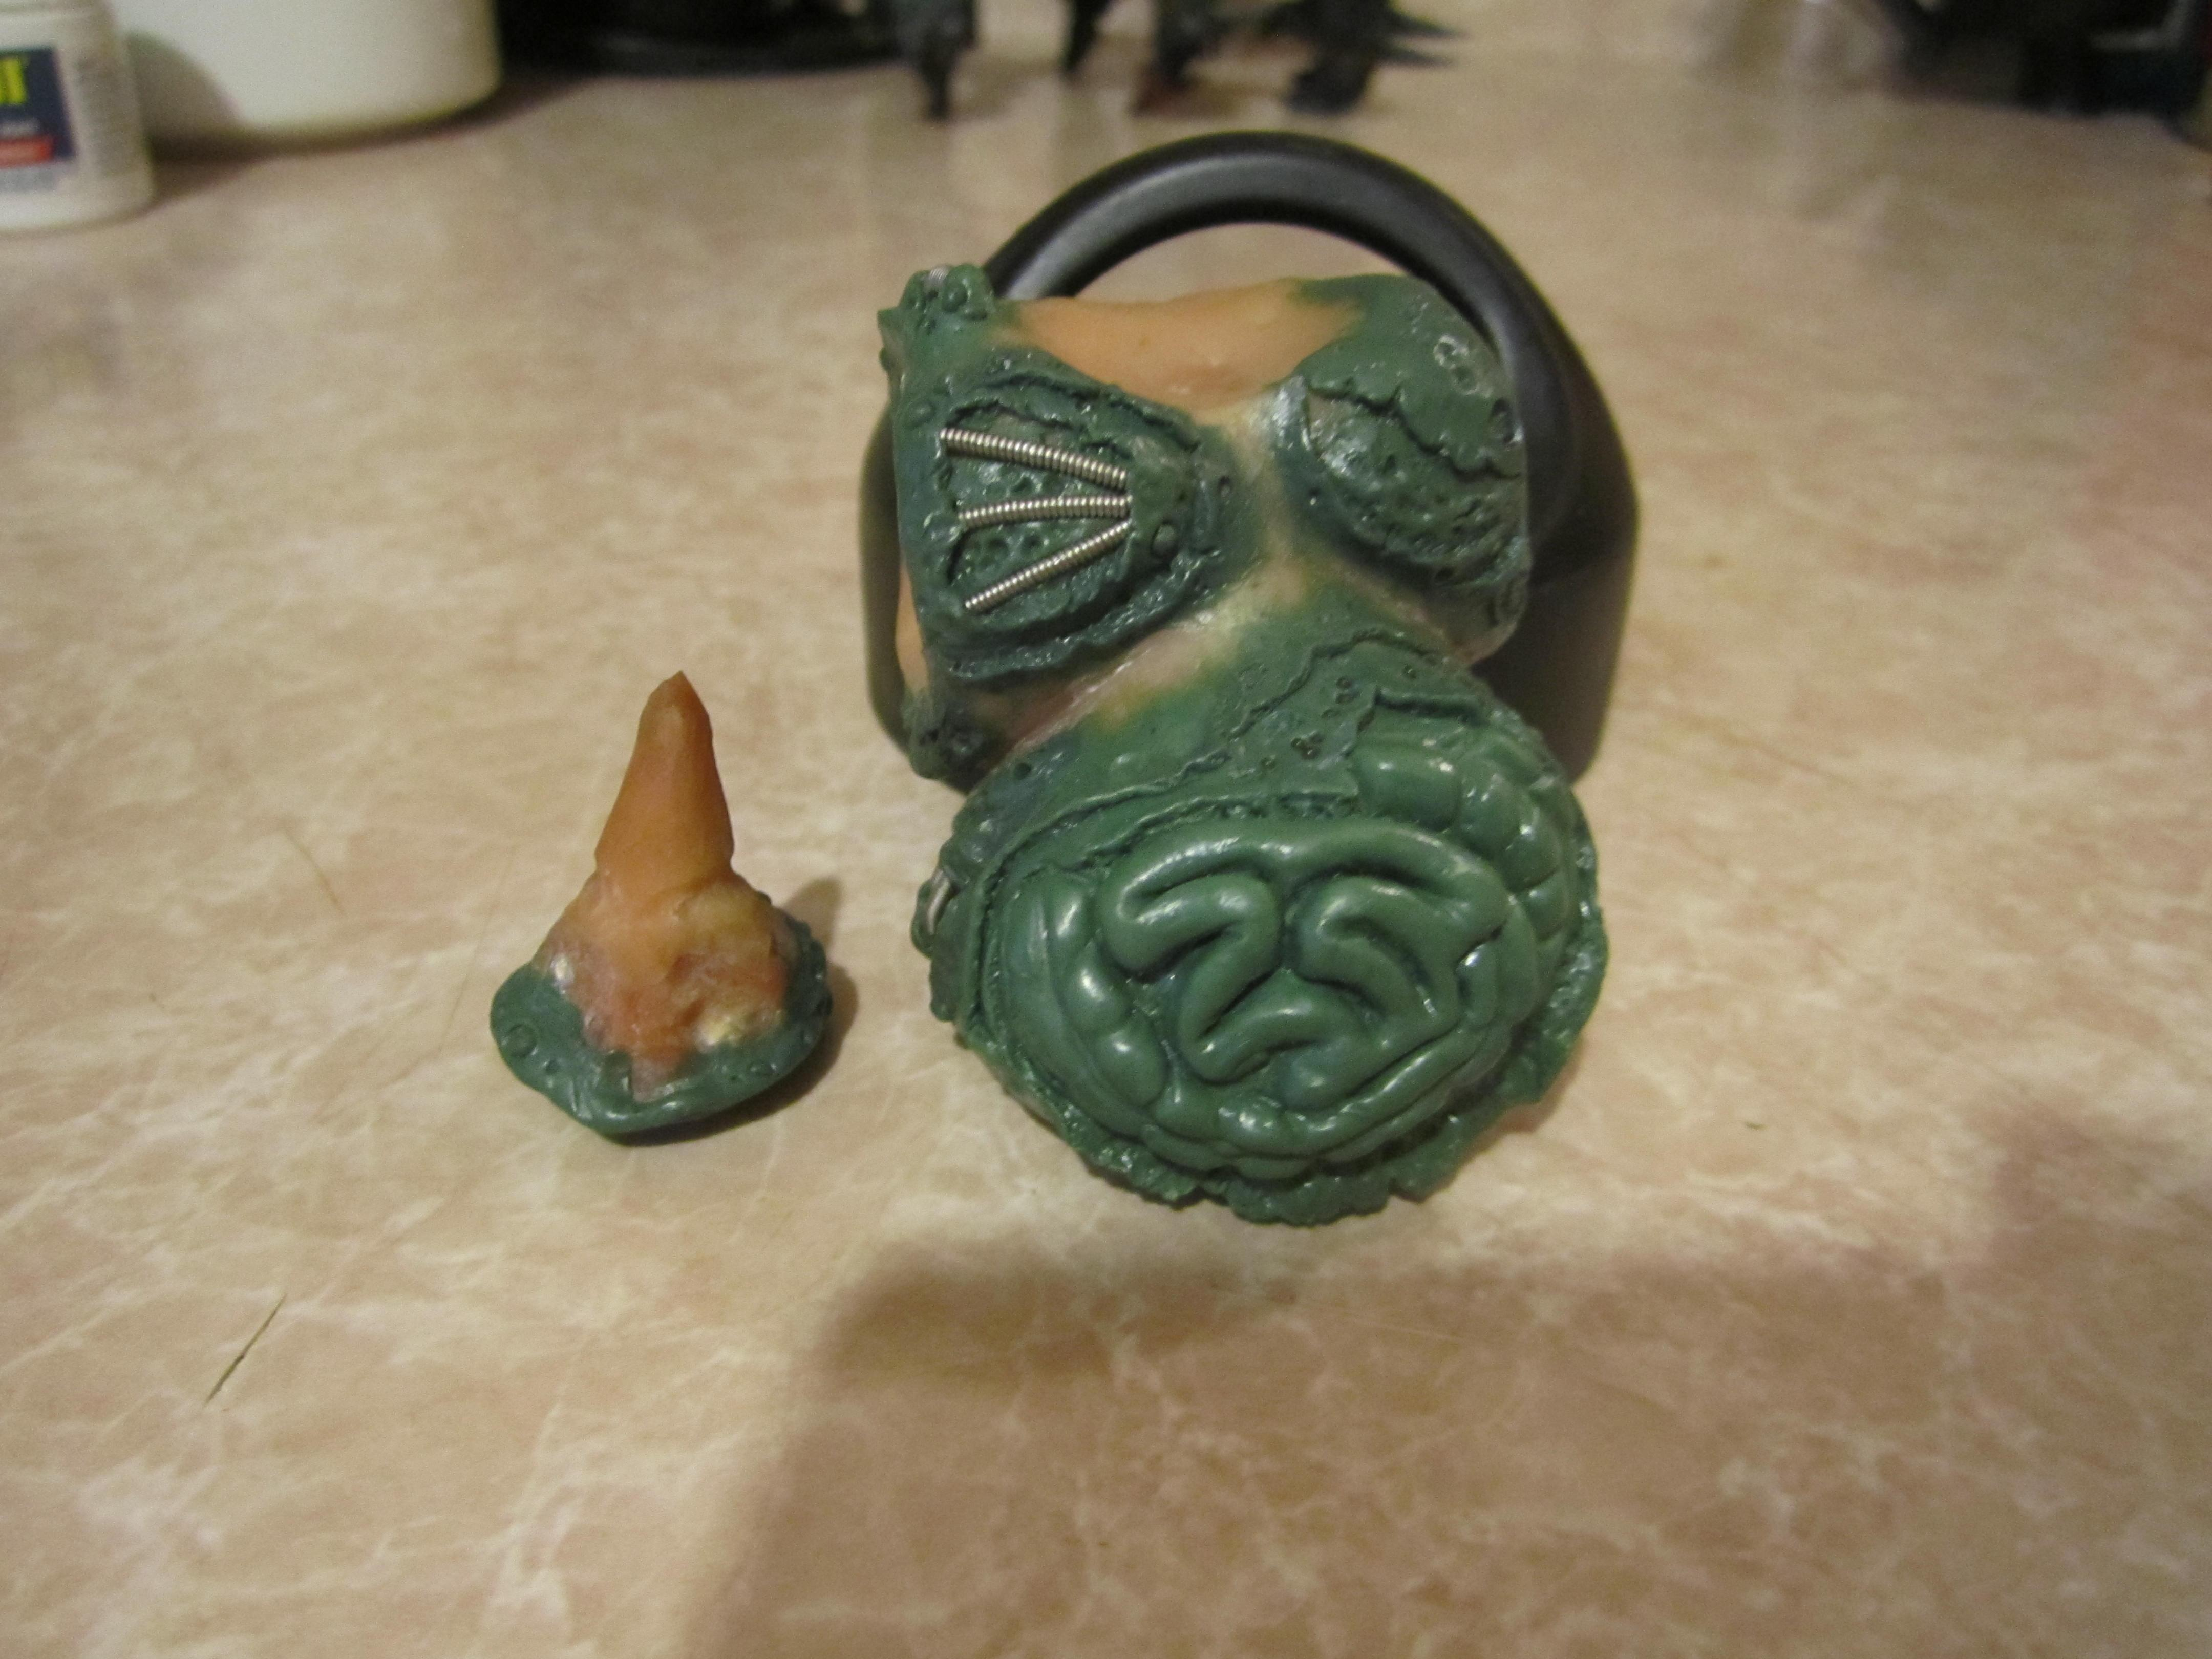 Shown with head removed.  Swappable heads